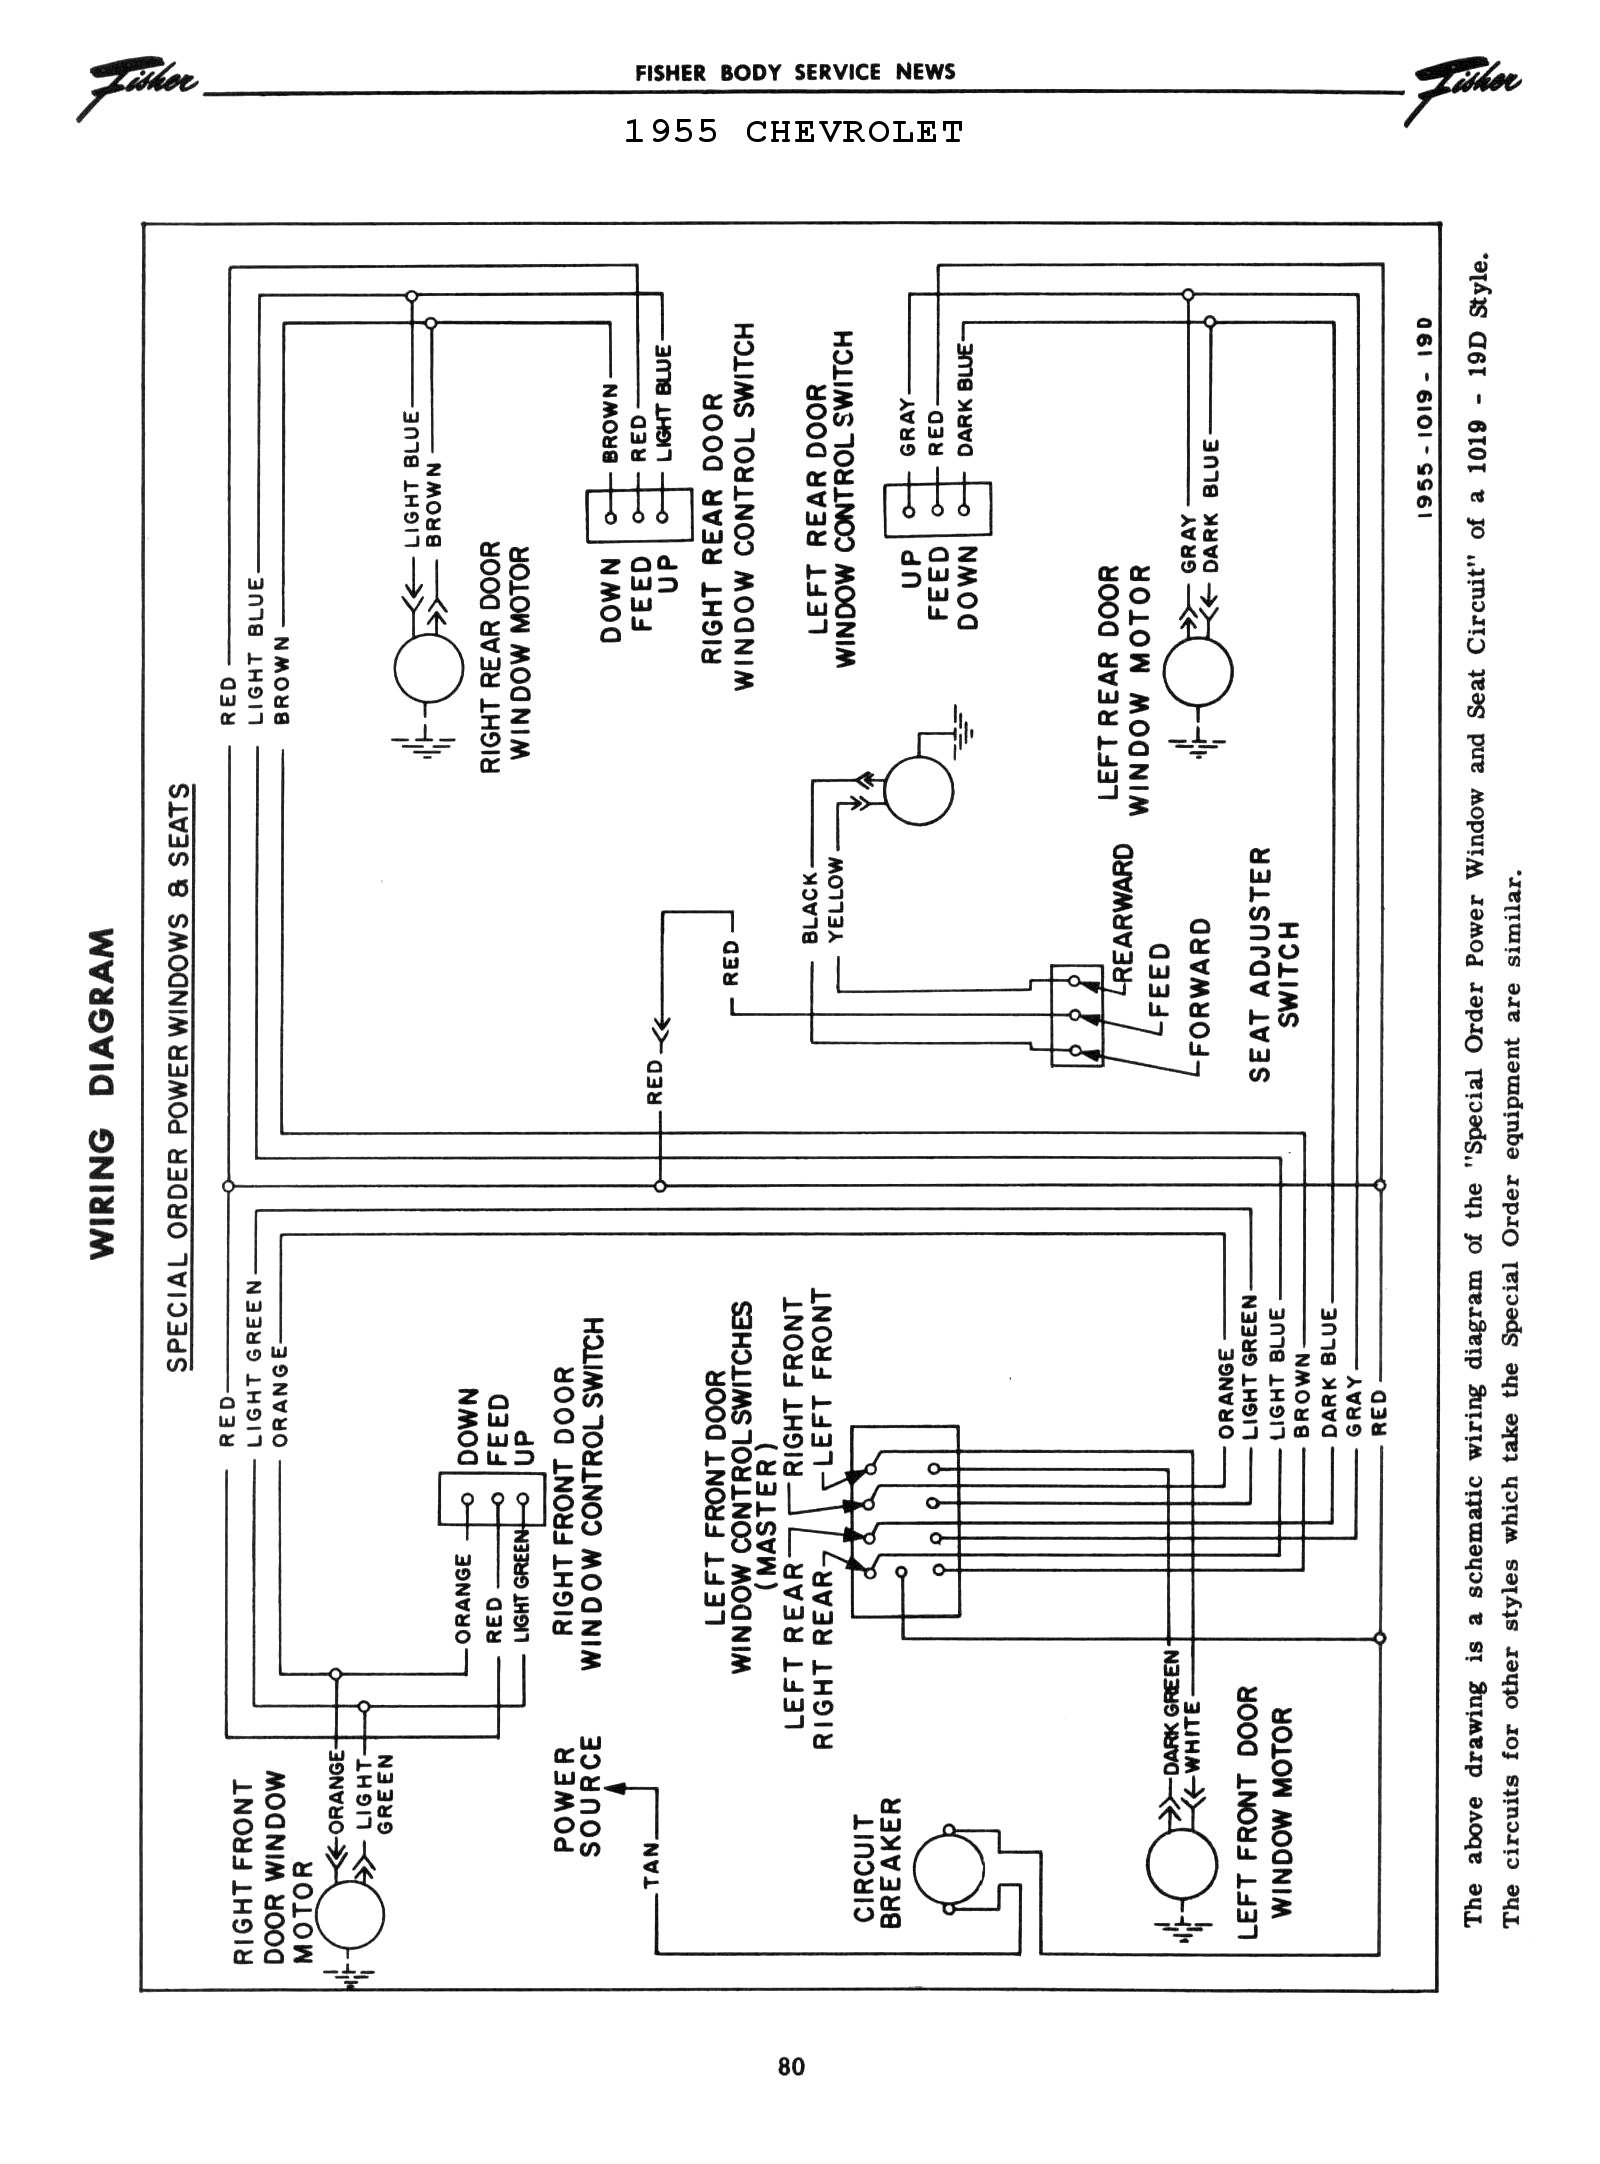 hight resolution of dome light wiring diagram 1955 chevy bel air 1954 mercury 1957 chevy fuse box wiring diagram